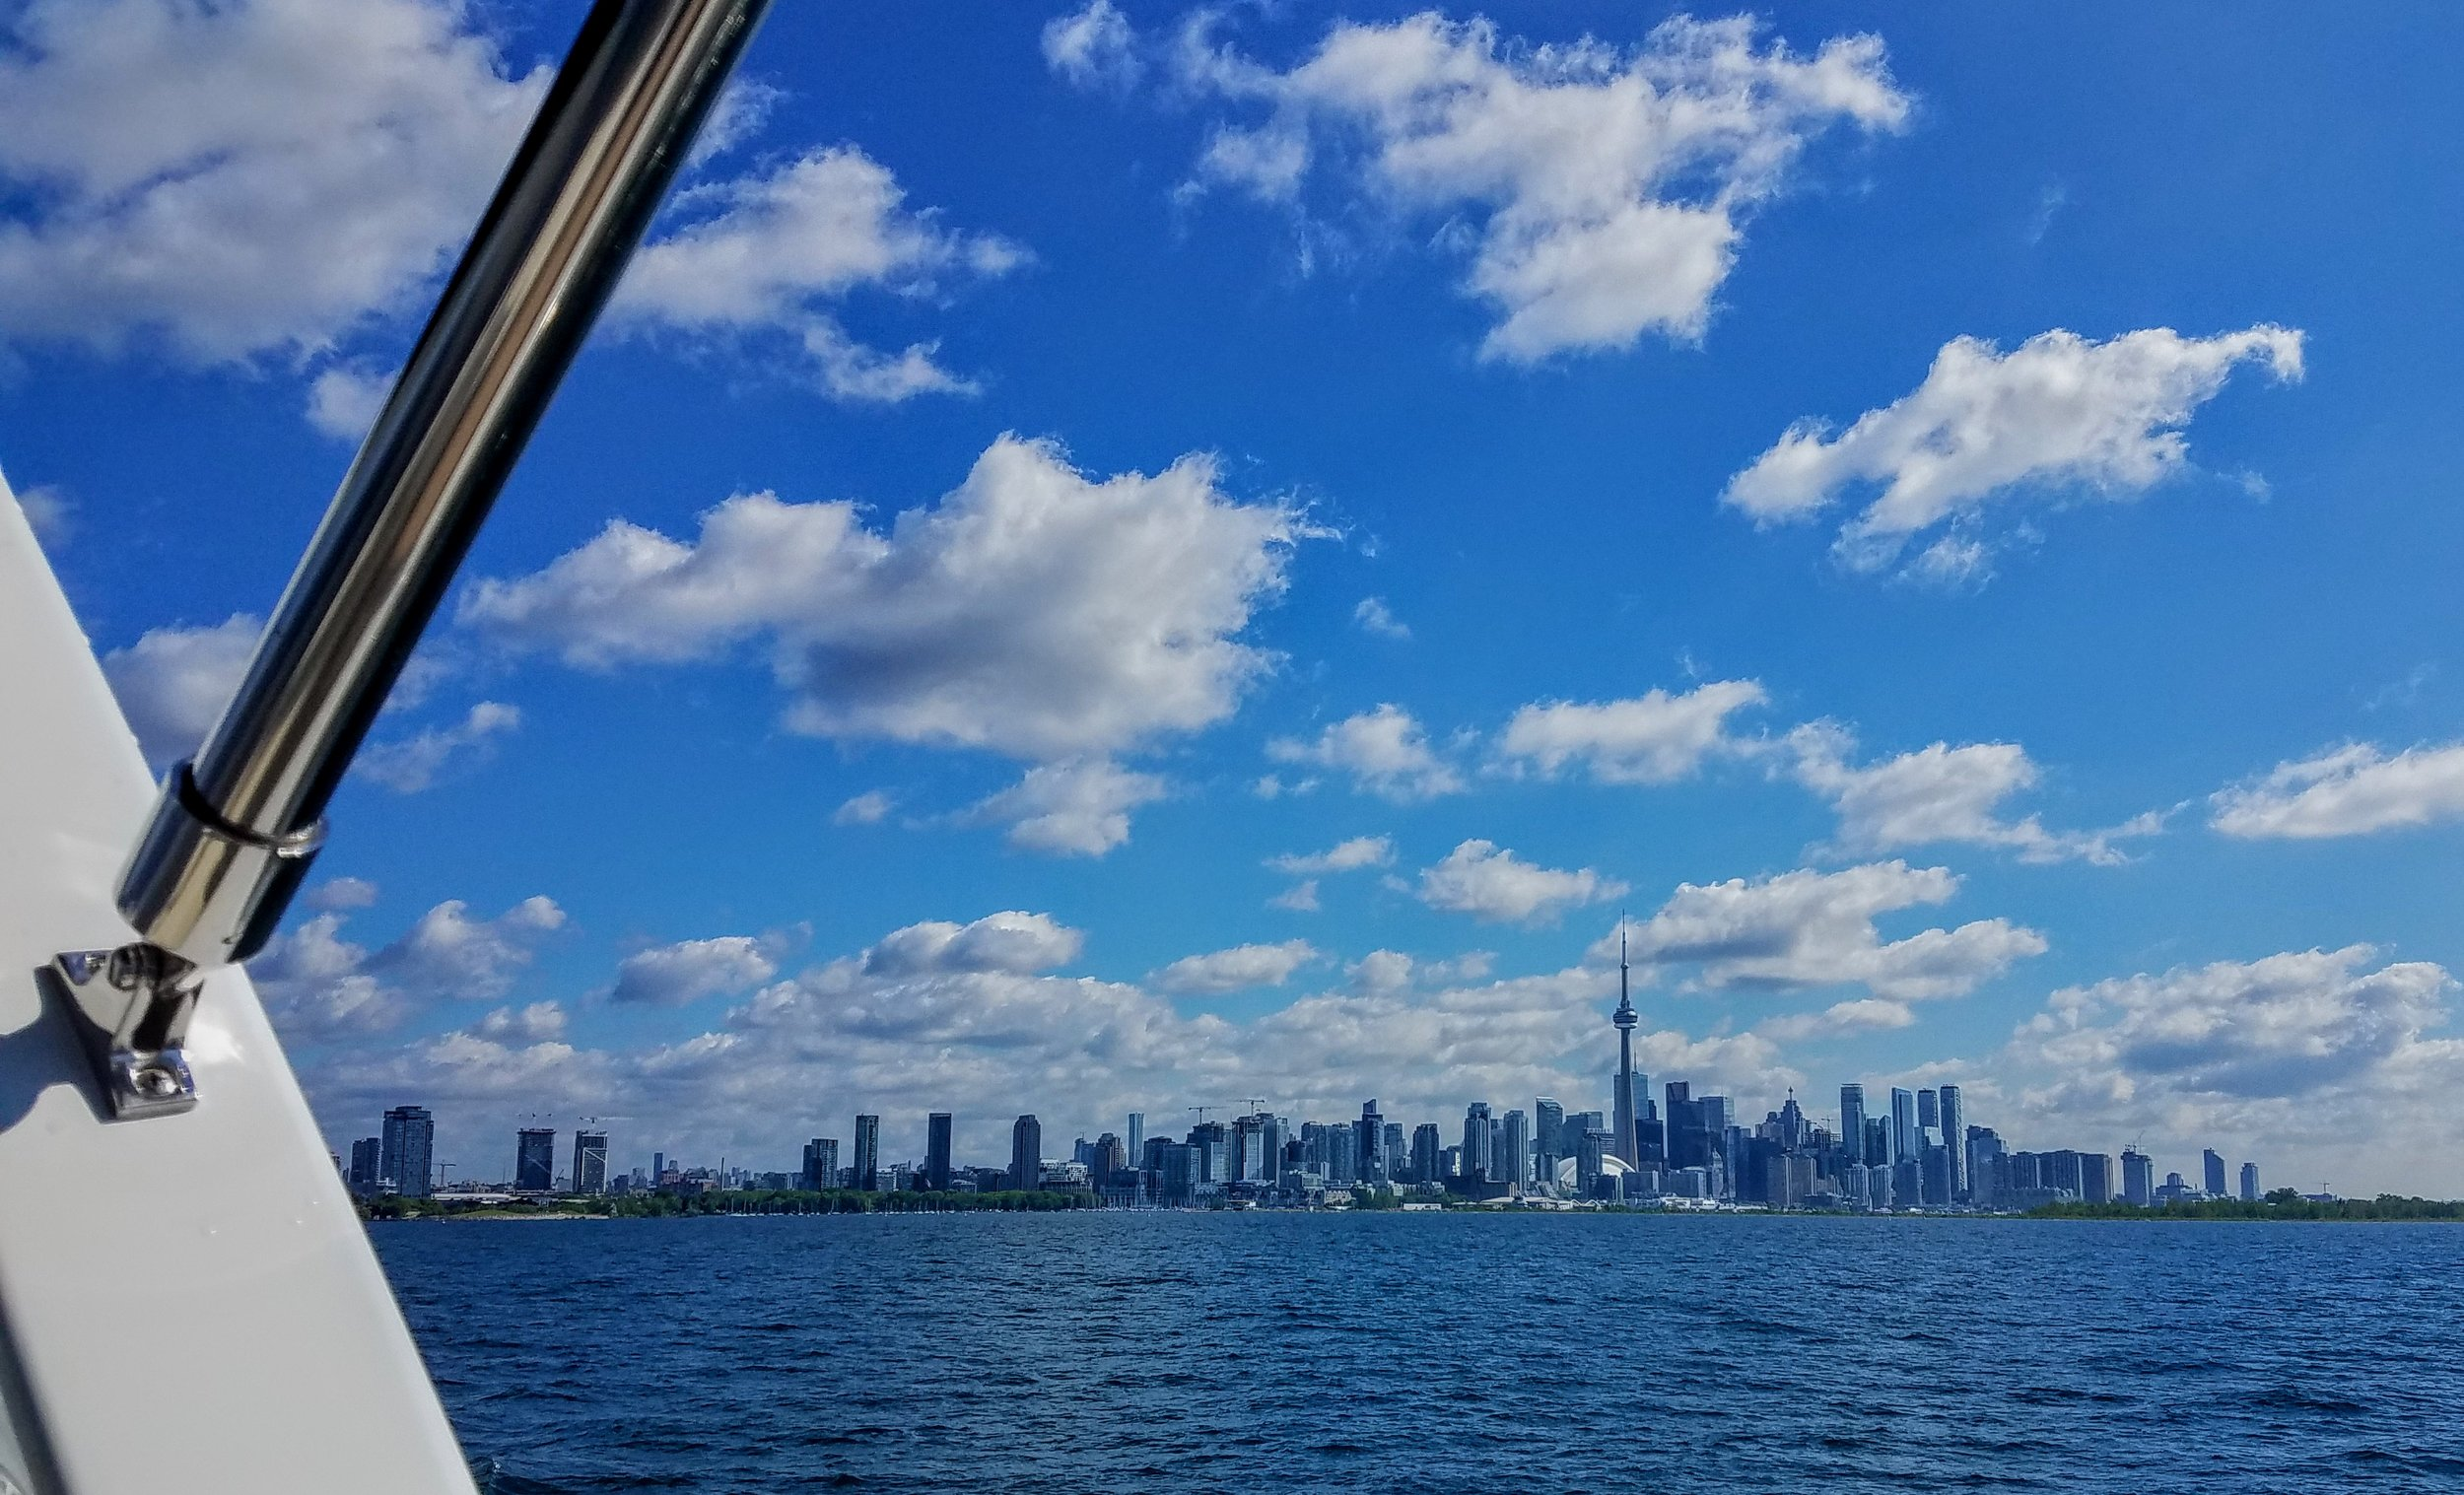 Bye, bye Toronto…hope to be back some day.